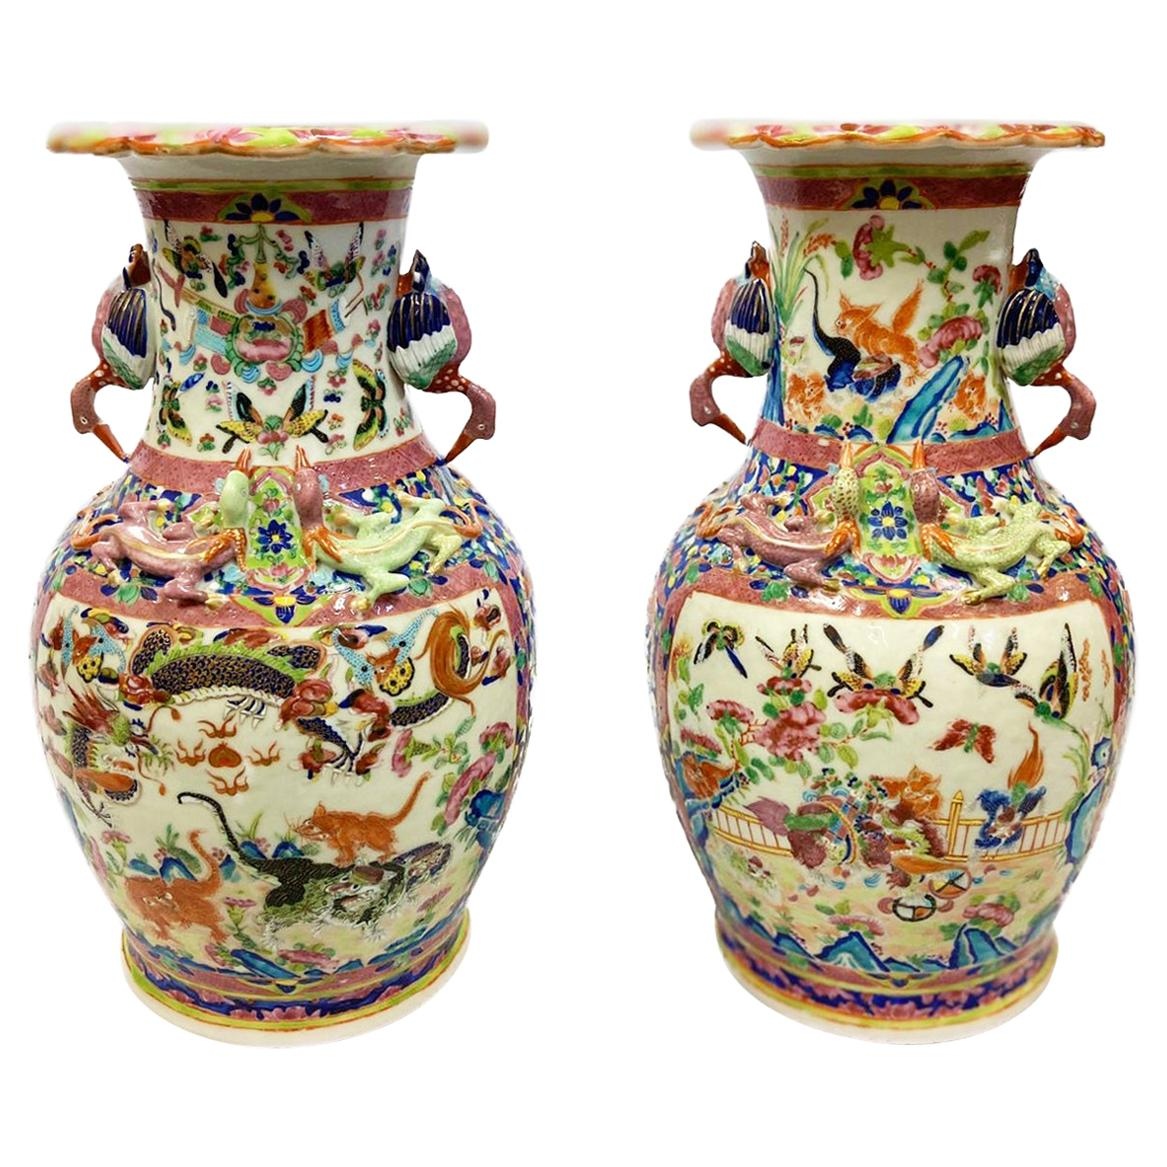 Pair of Chinese Canton / Rose Medallion Vases / Lamps, 19th Century